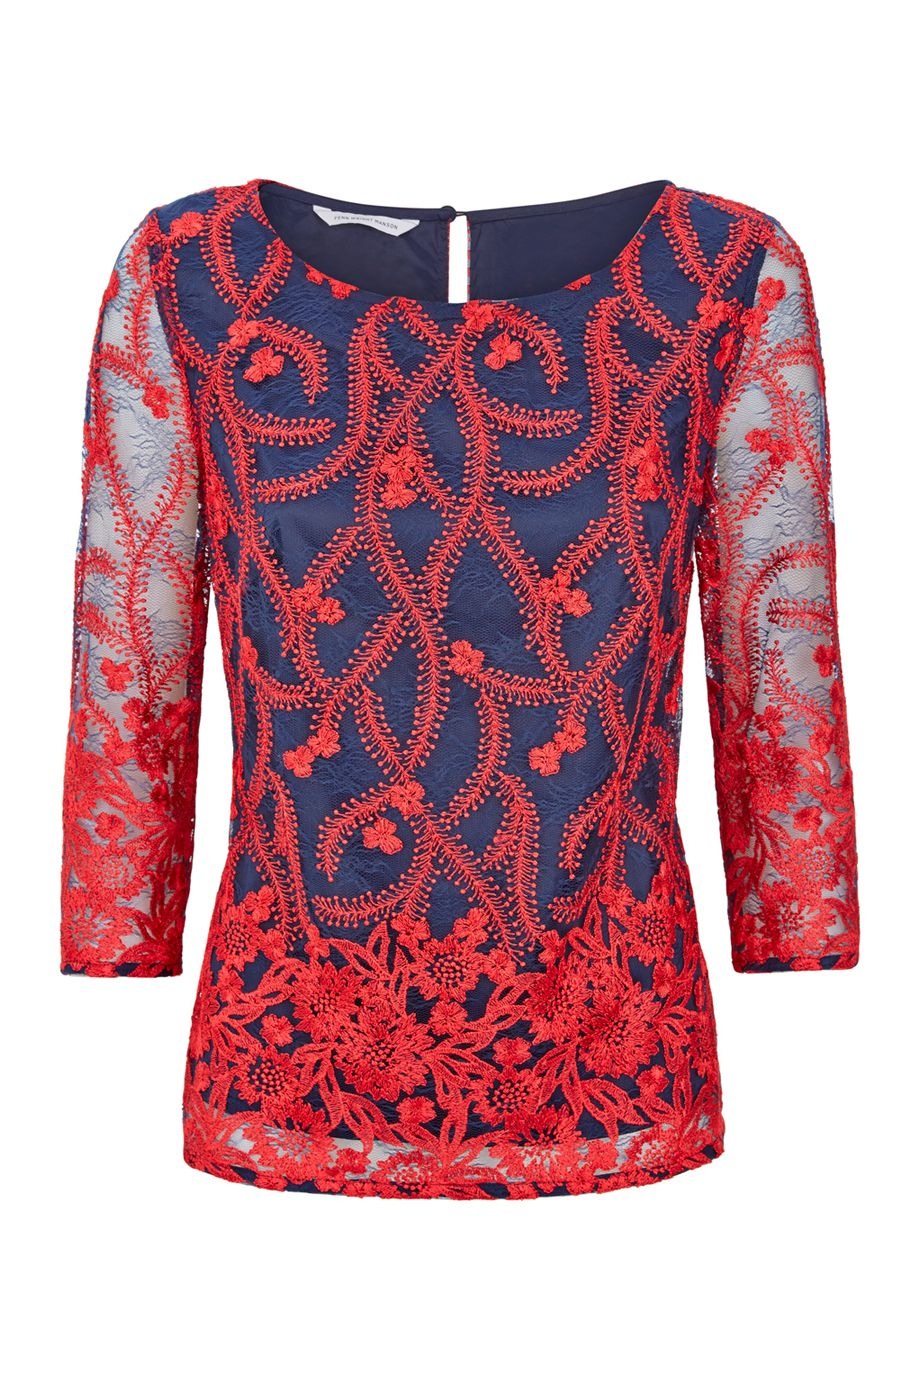 Fenn Wright Manson Lorna Top, Red Multi